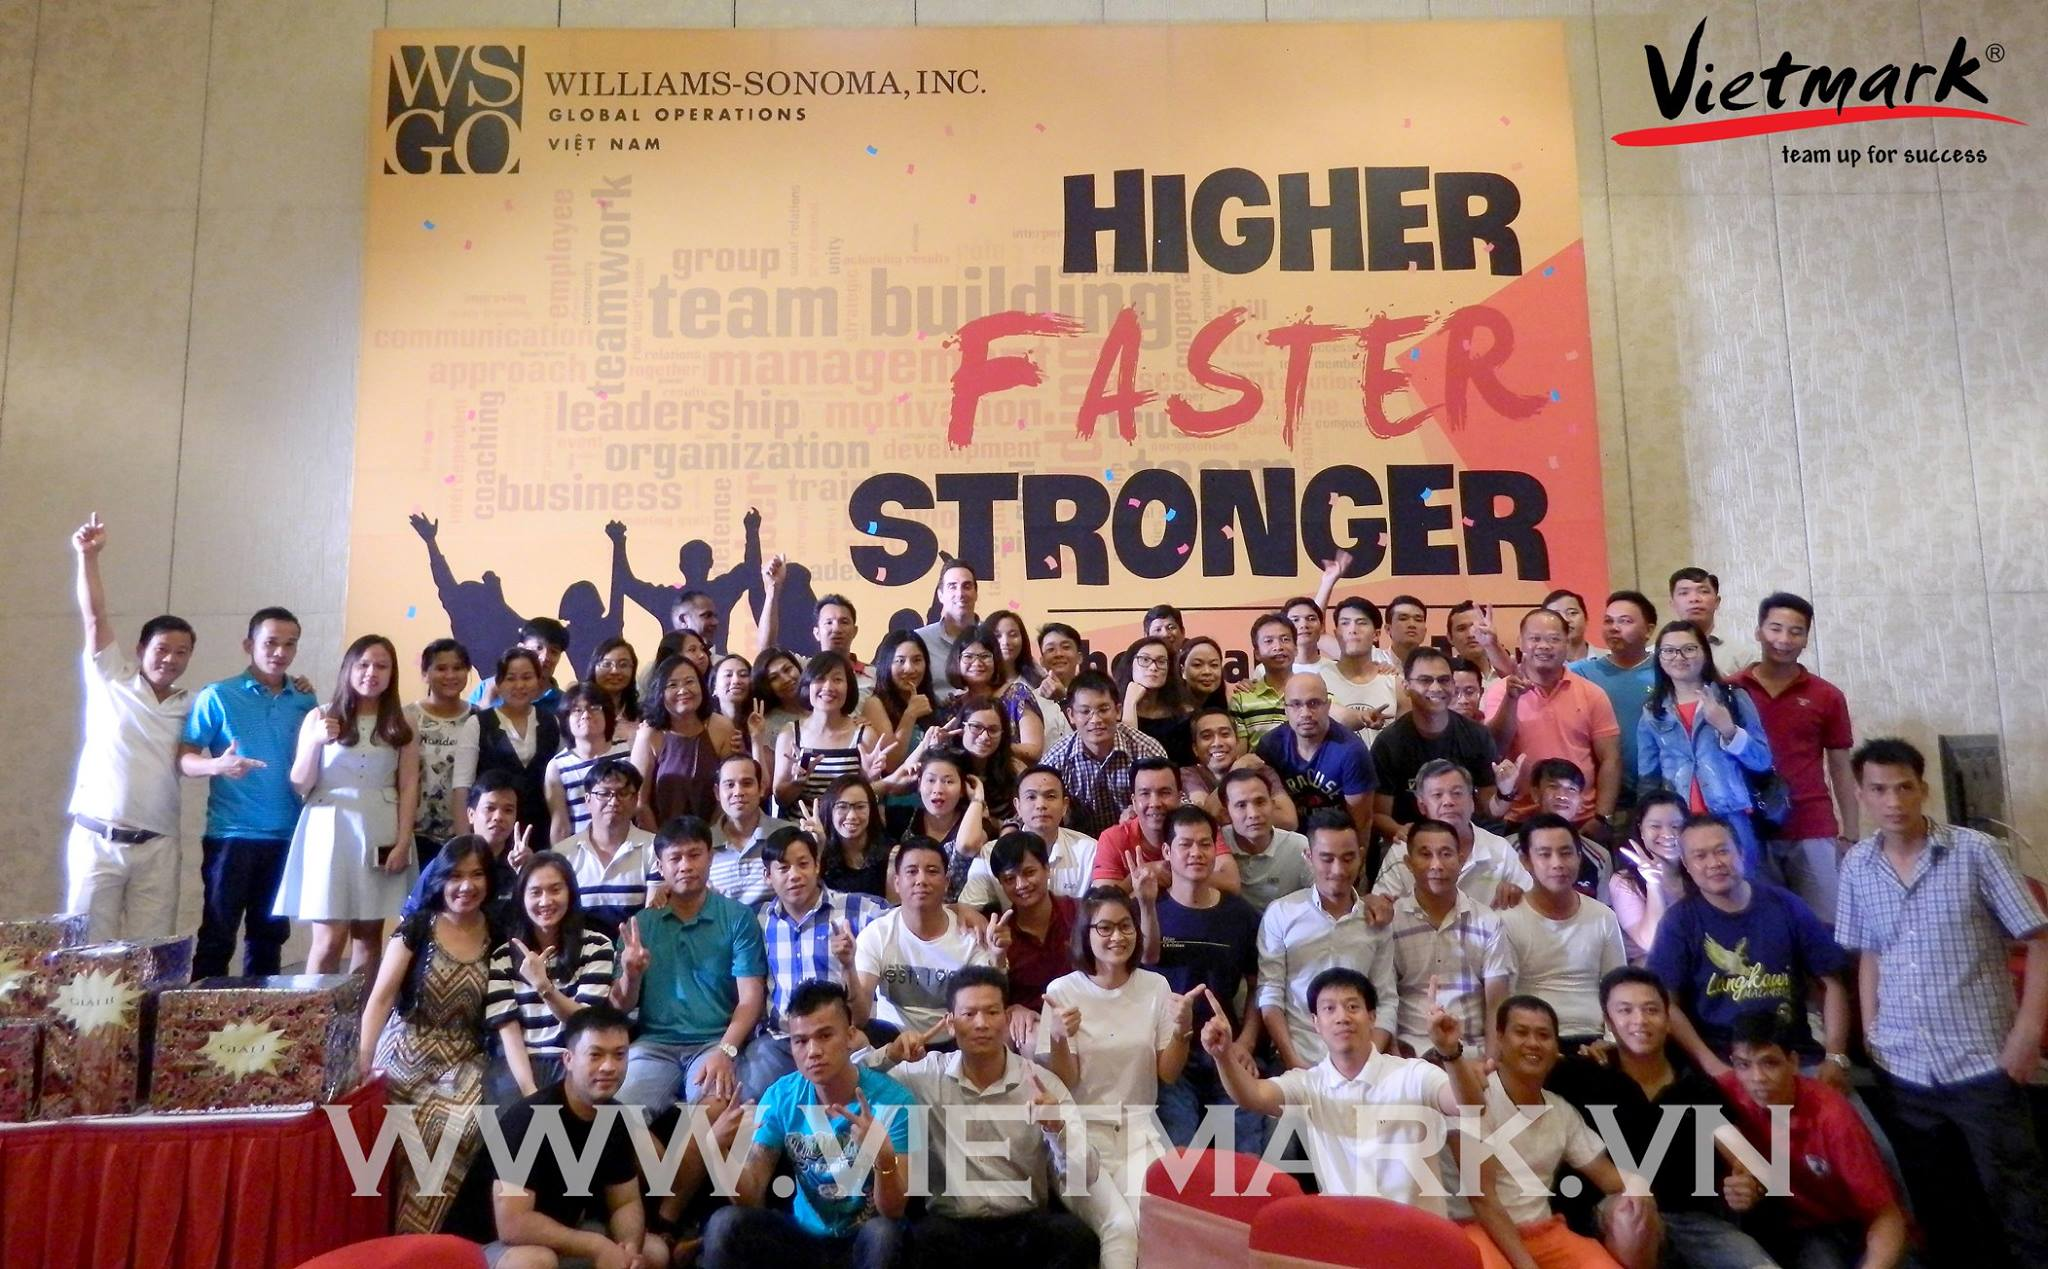 HIGHER - FASTER - STRONGER - Teambuilding 2017